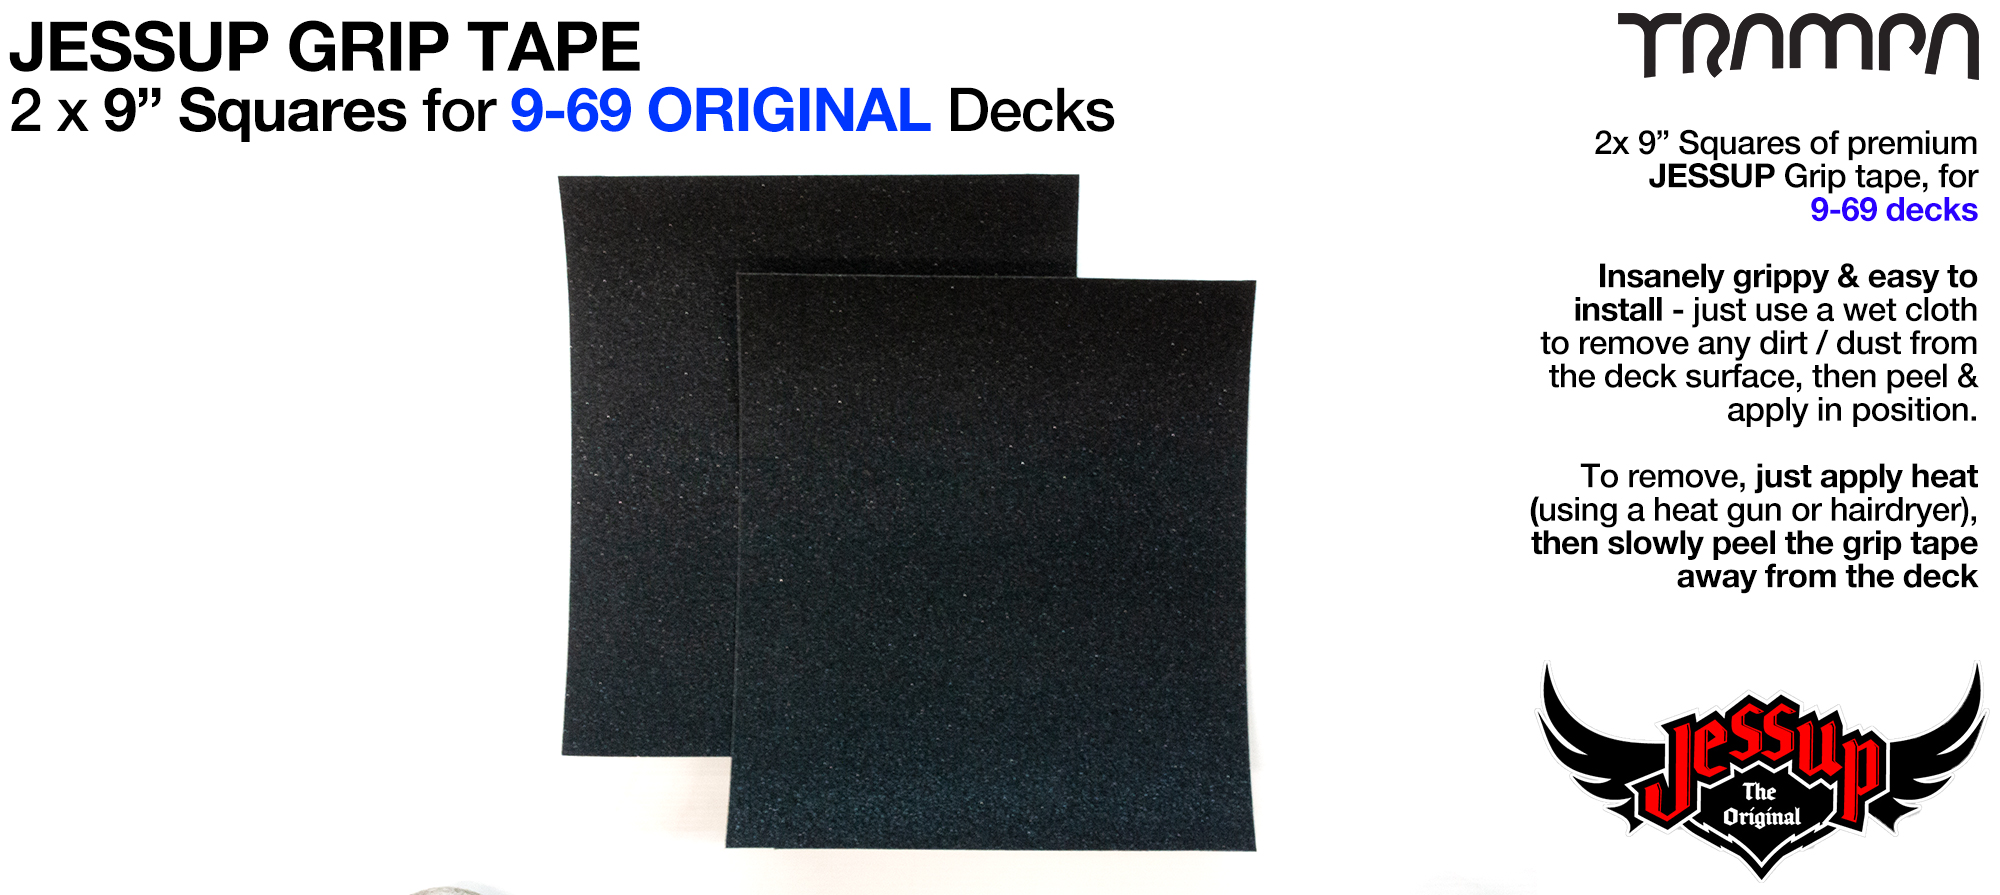 Grip tape 2 x 9 inch squares - Jessup